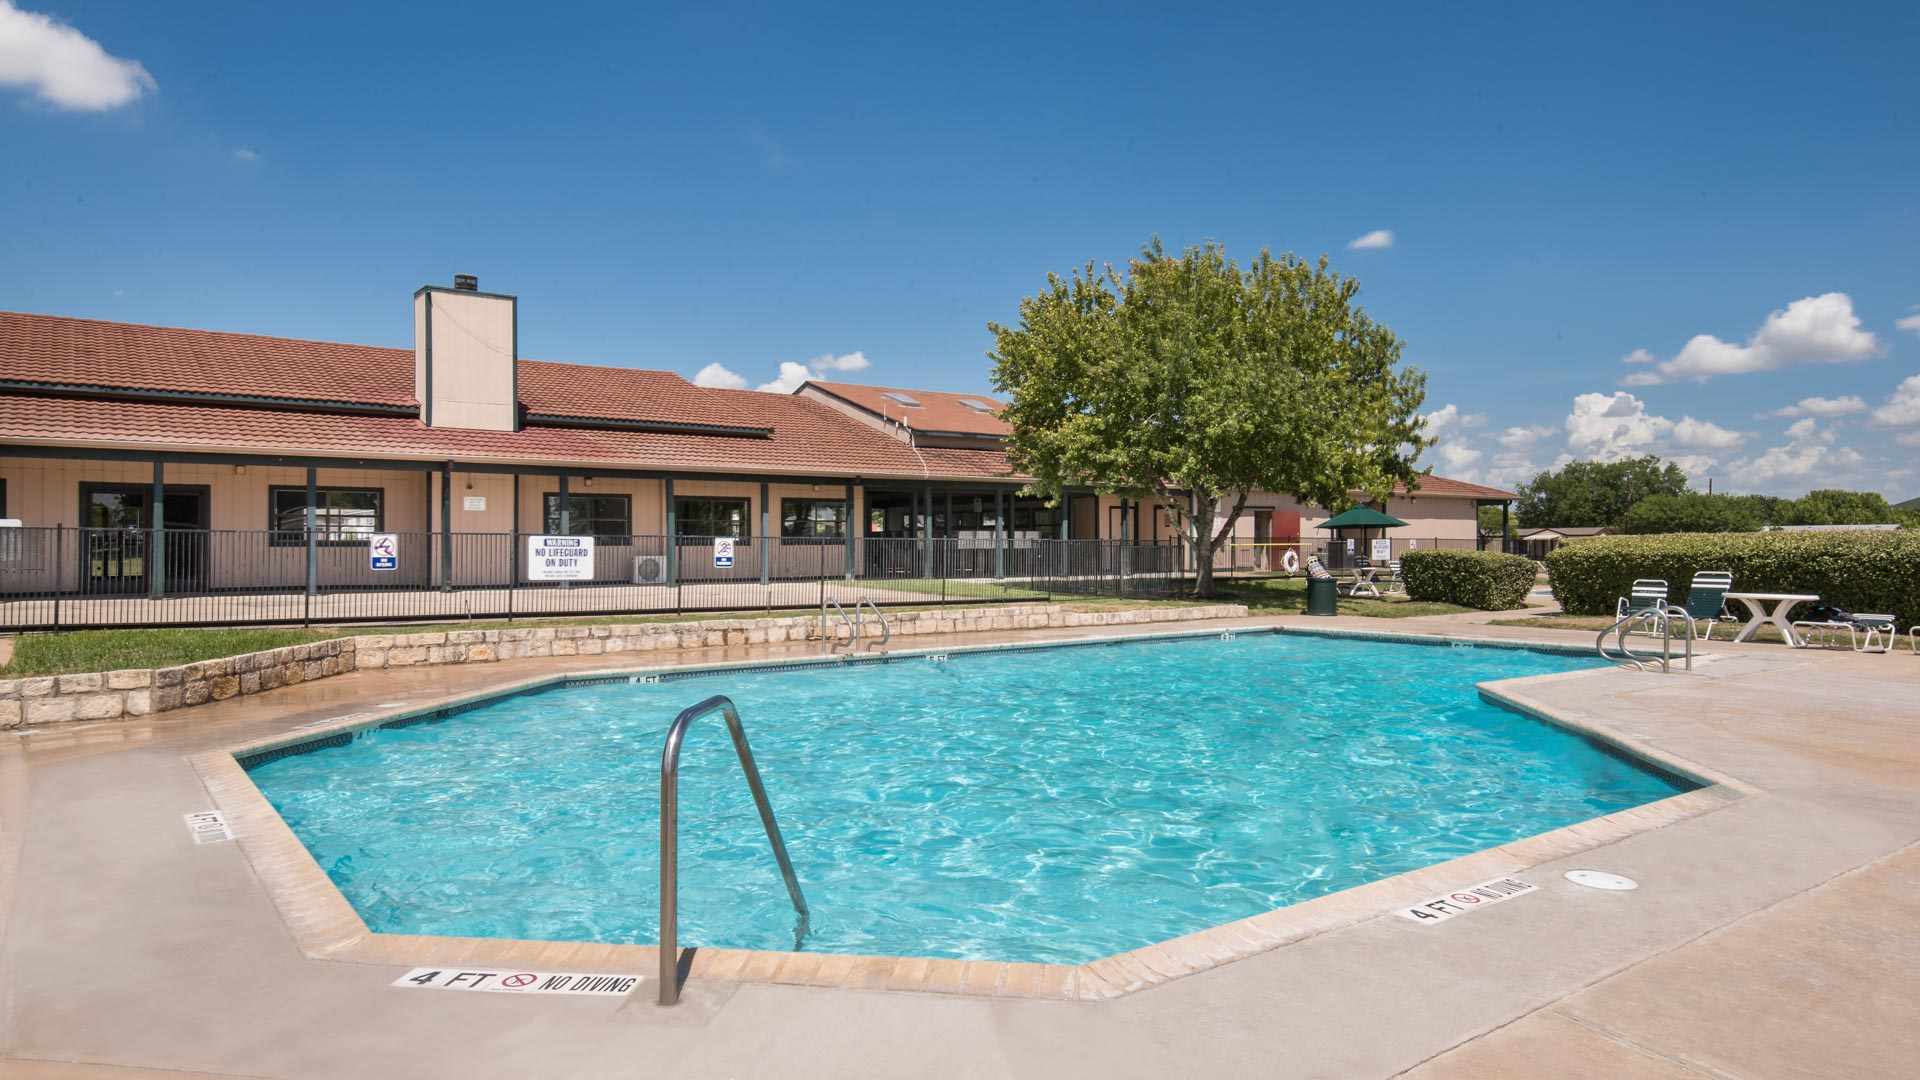 Chisholm Point Manufactured Homes Community Swimming Pool in Pflugerville, TX